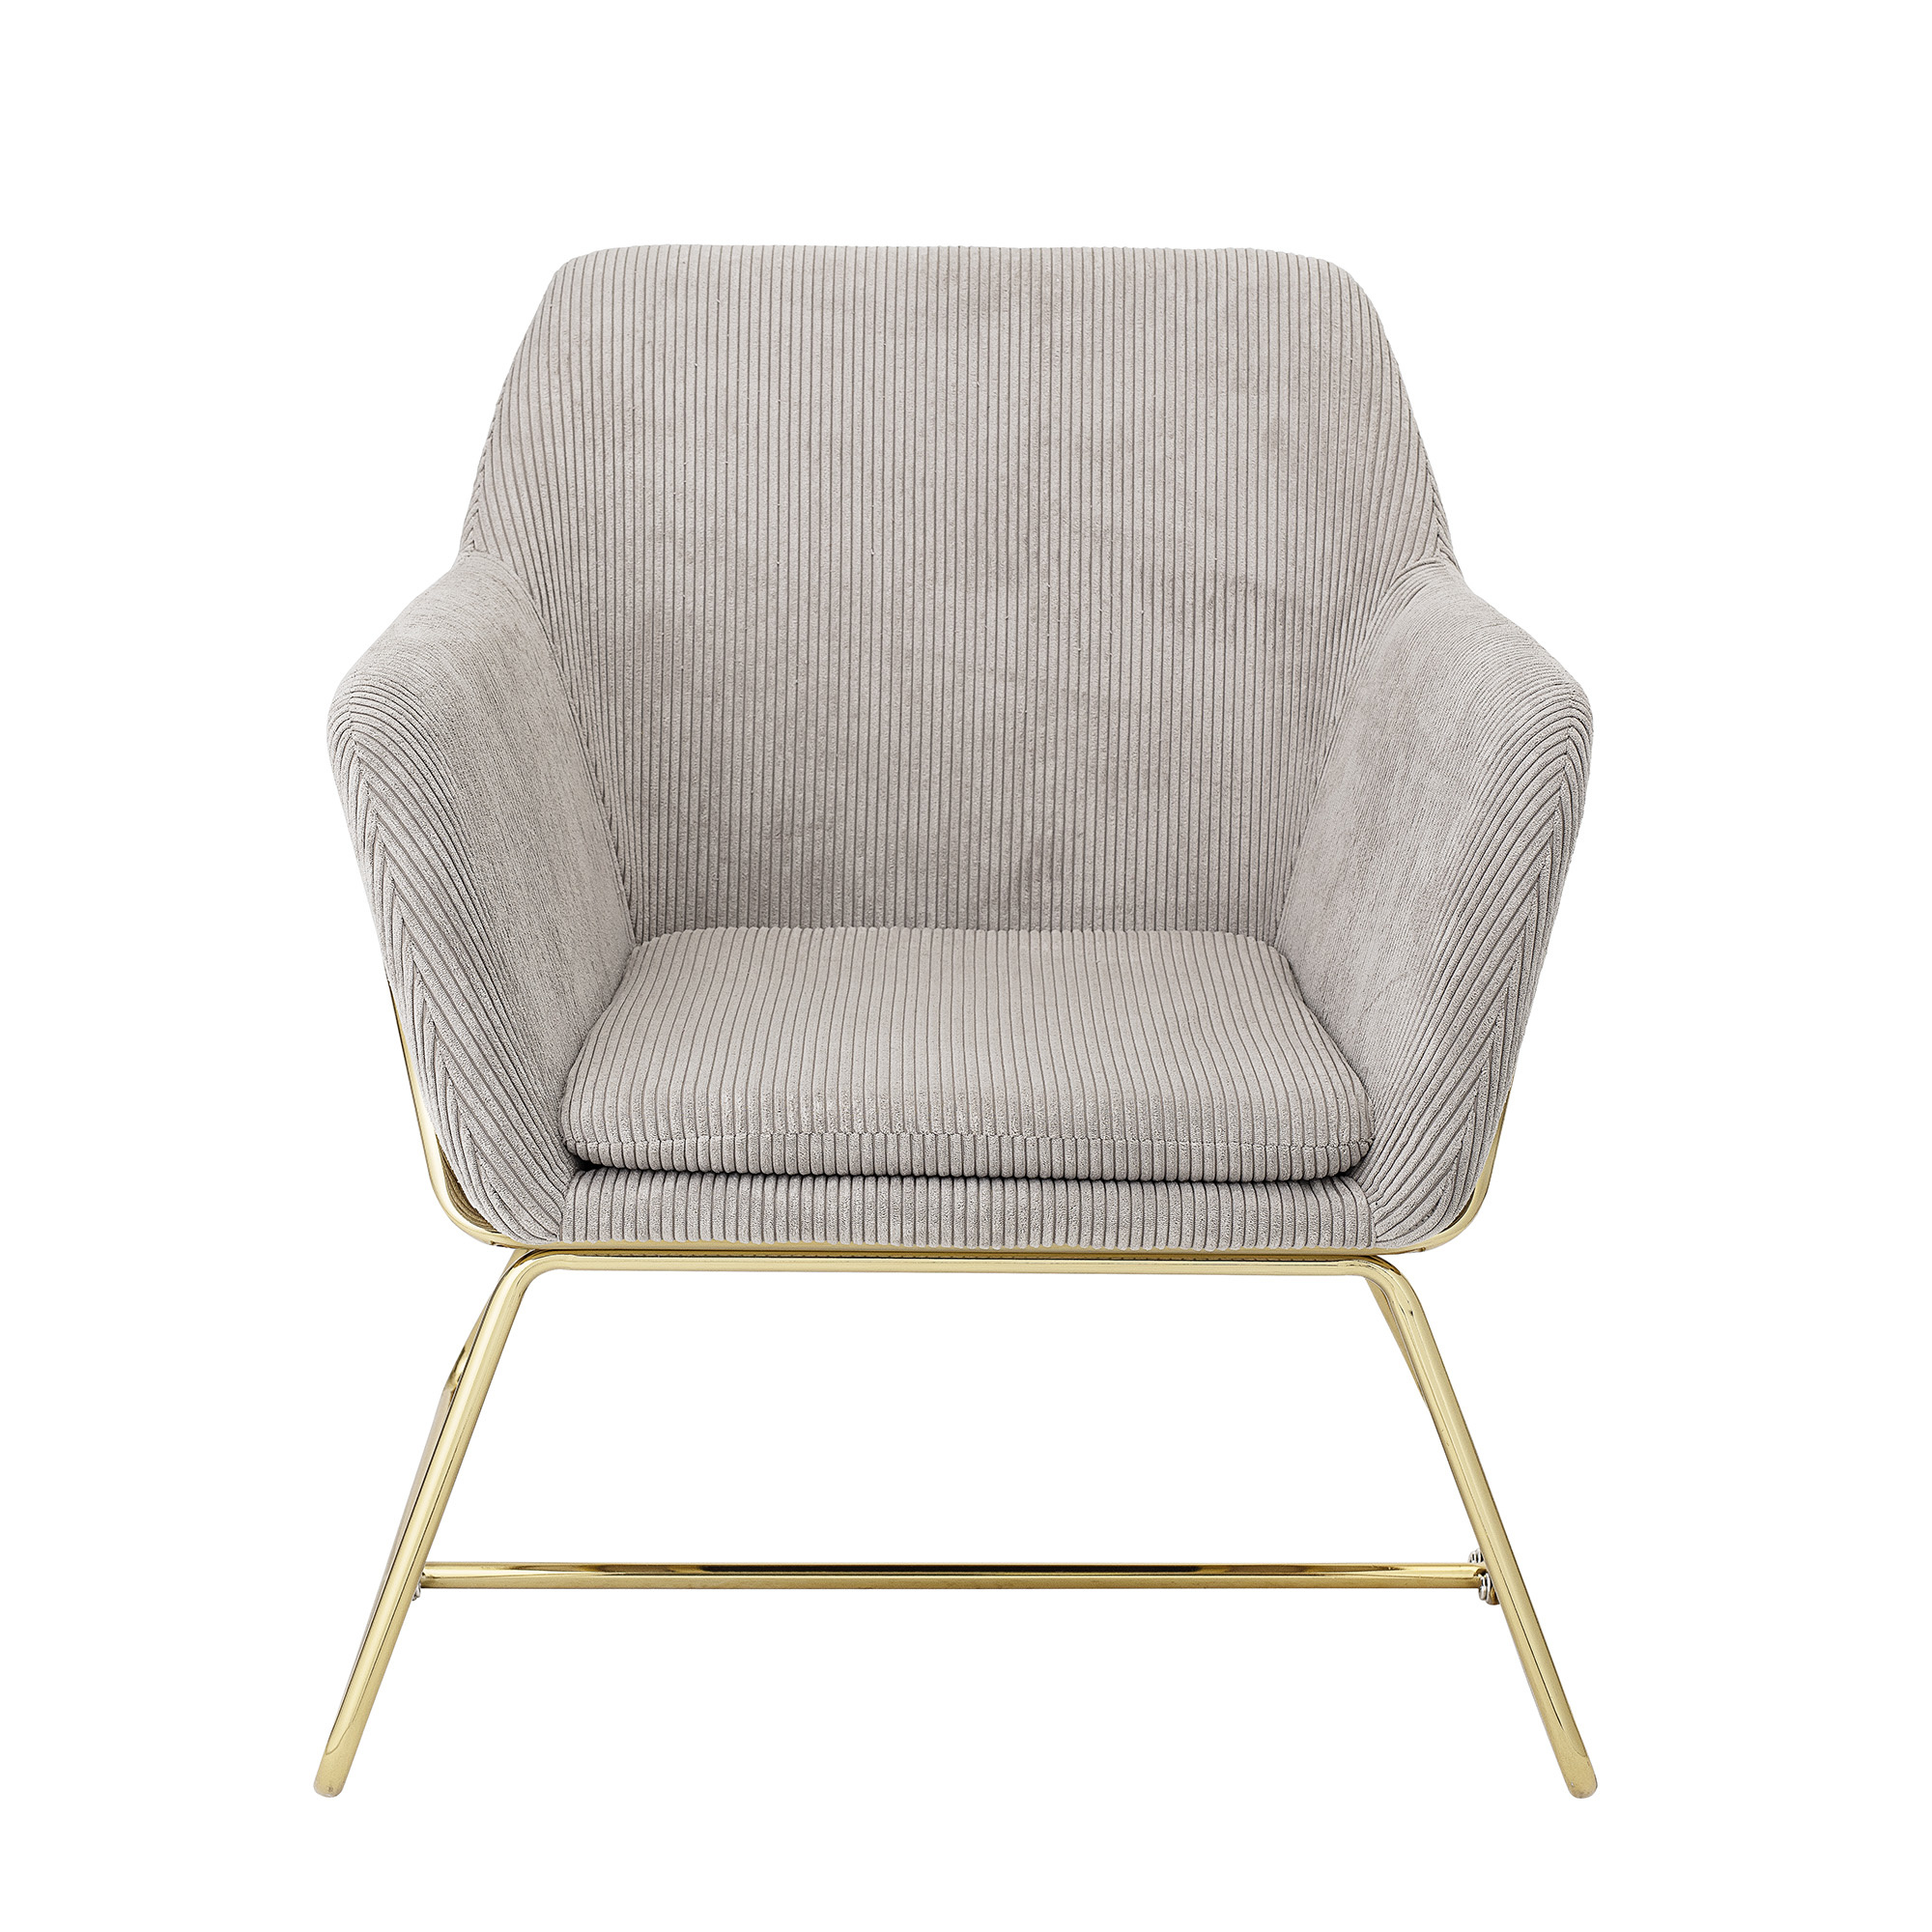 Lounge Sessel Natur Bloomingville Bass Lounge Sessel Natur Grau